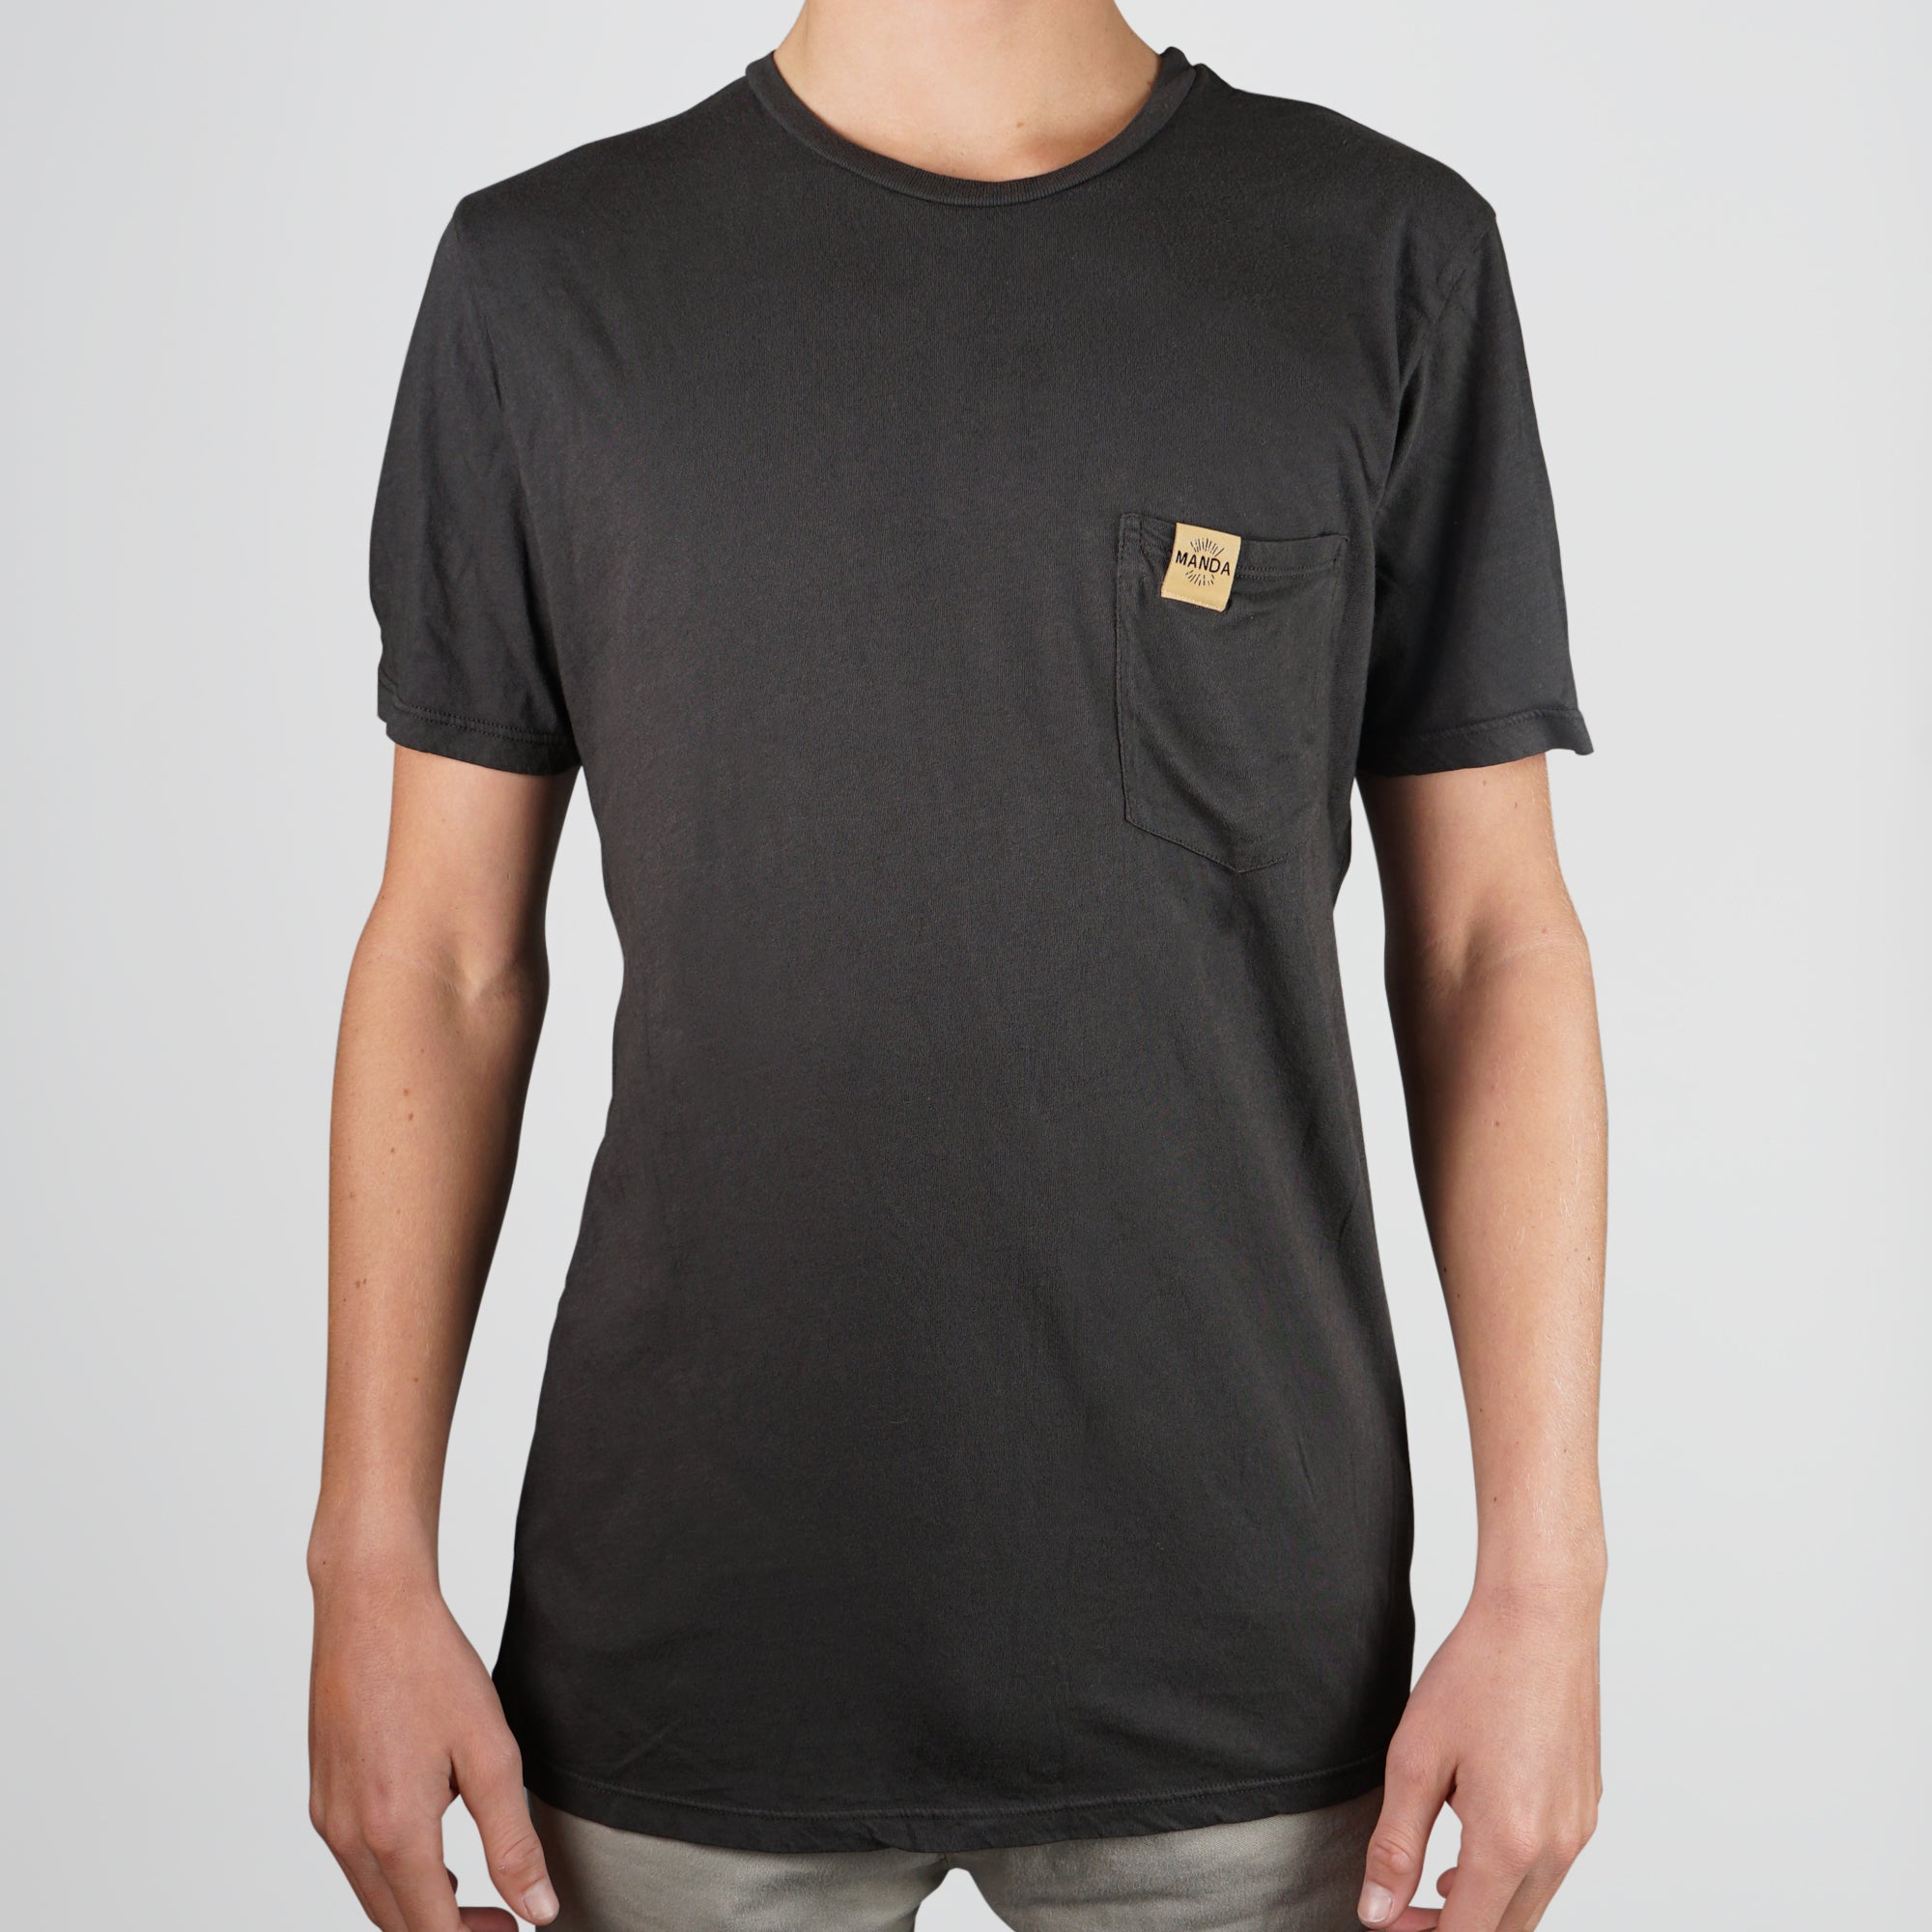 MANDA Organic Cotton Pocket T-Shirt